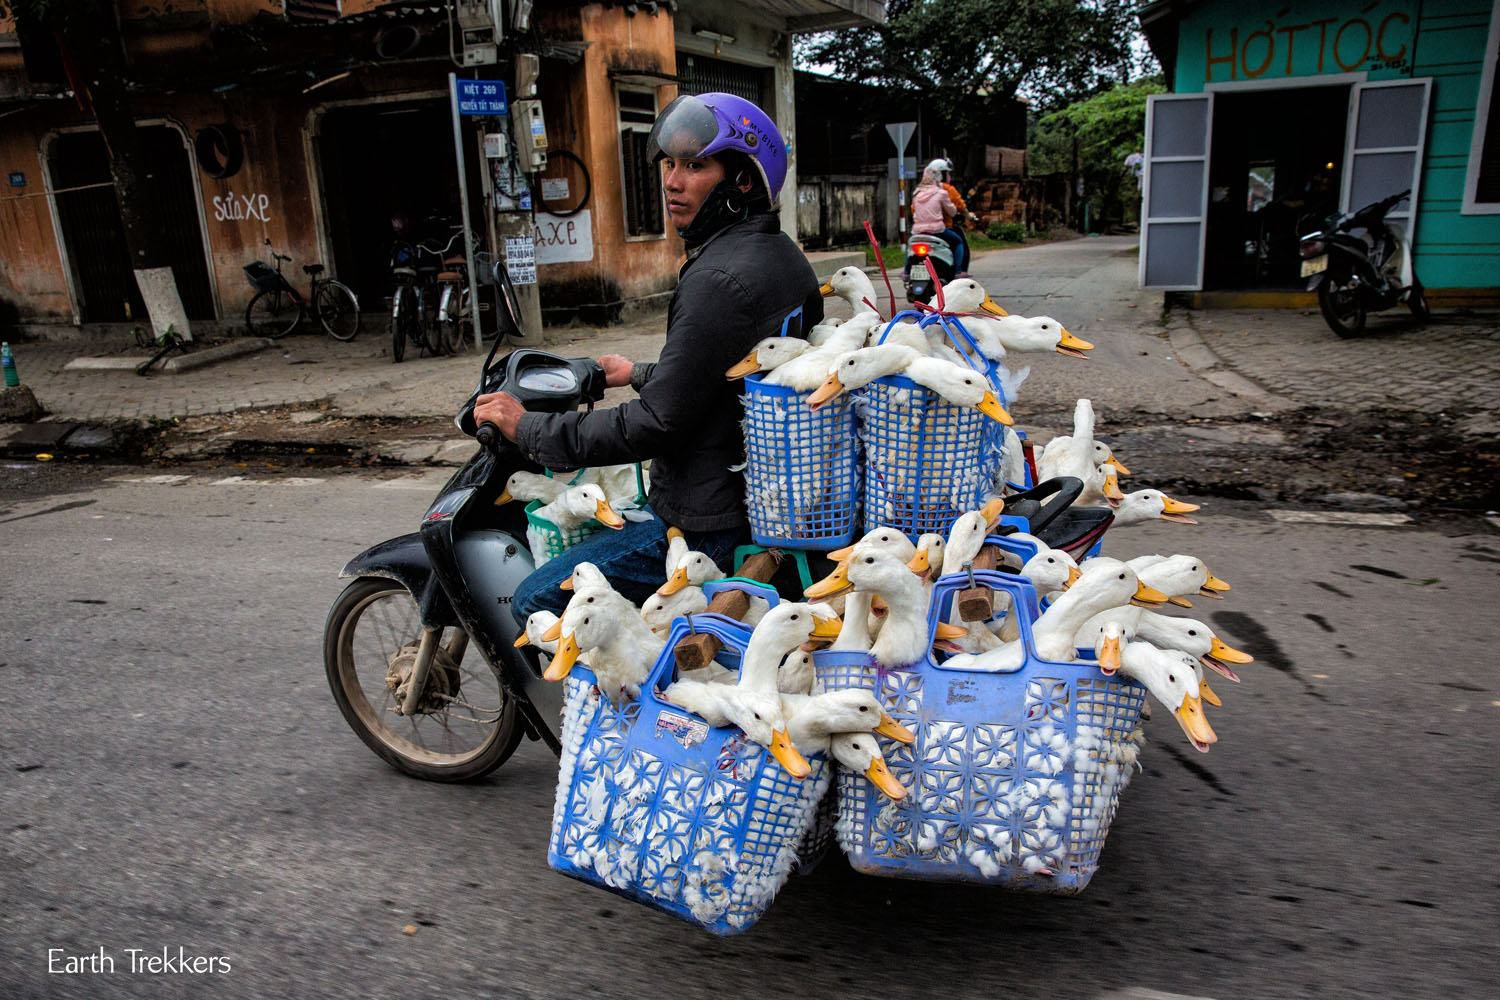 Ducks on a Motorbike